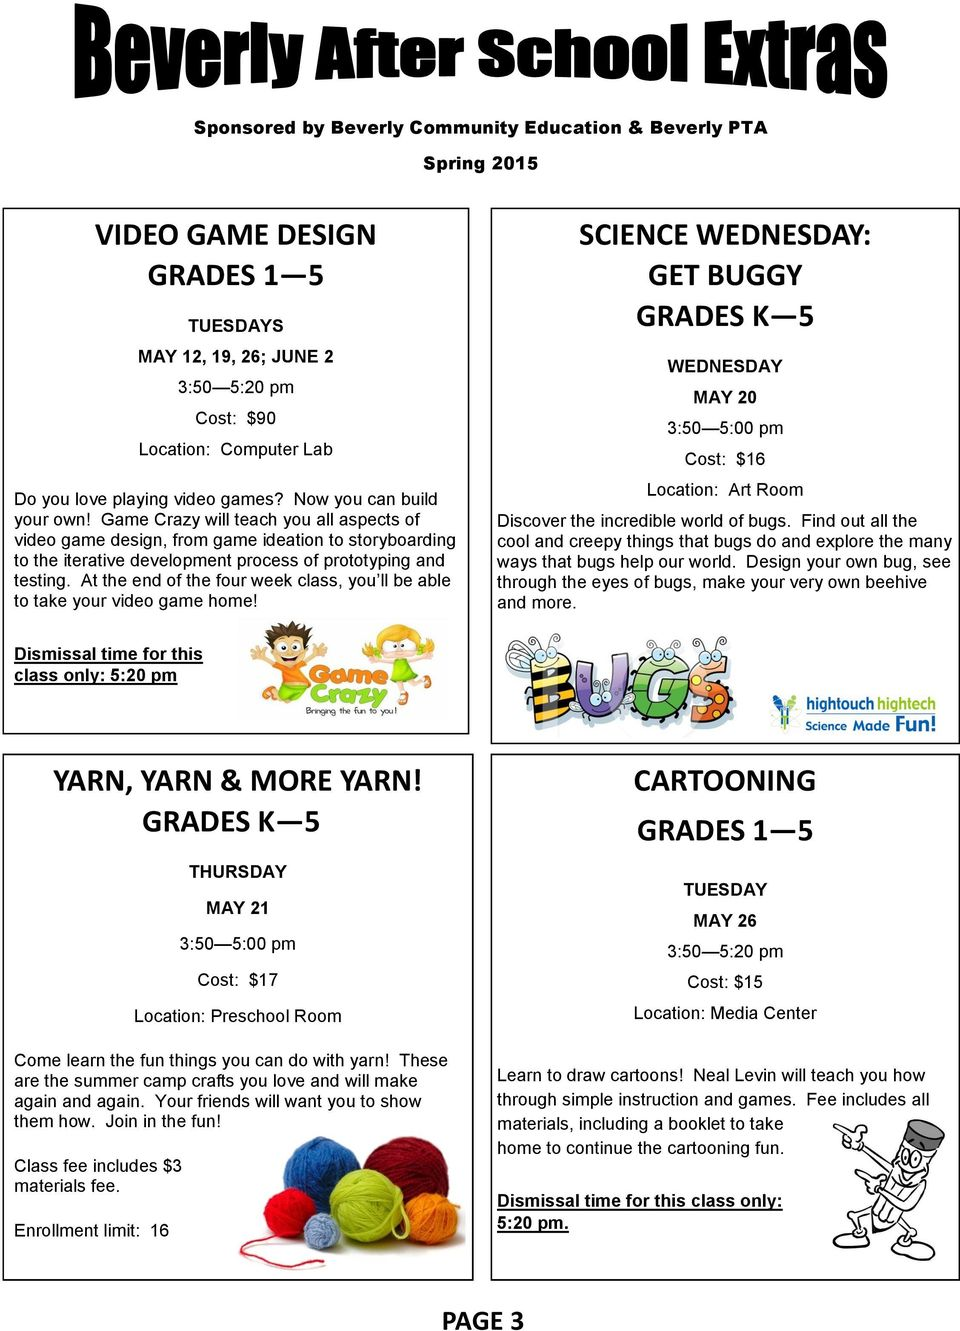 At the end of the four week class, you ll be able to take your video game home! GET BUGGY WEDNESDAY MAY 20 Cost: $16 Location: Art Room Discover the incredible world of bugs.